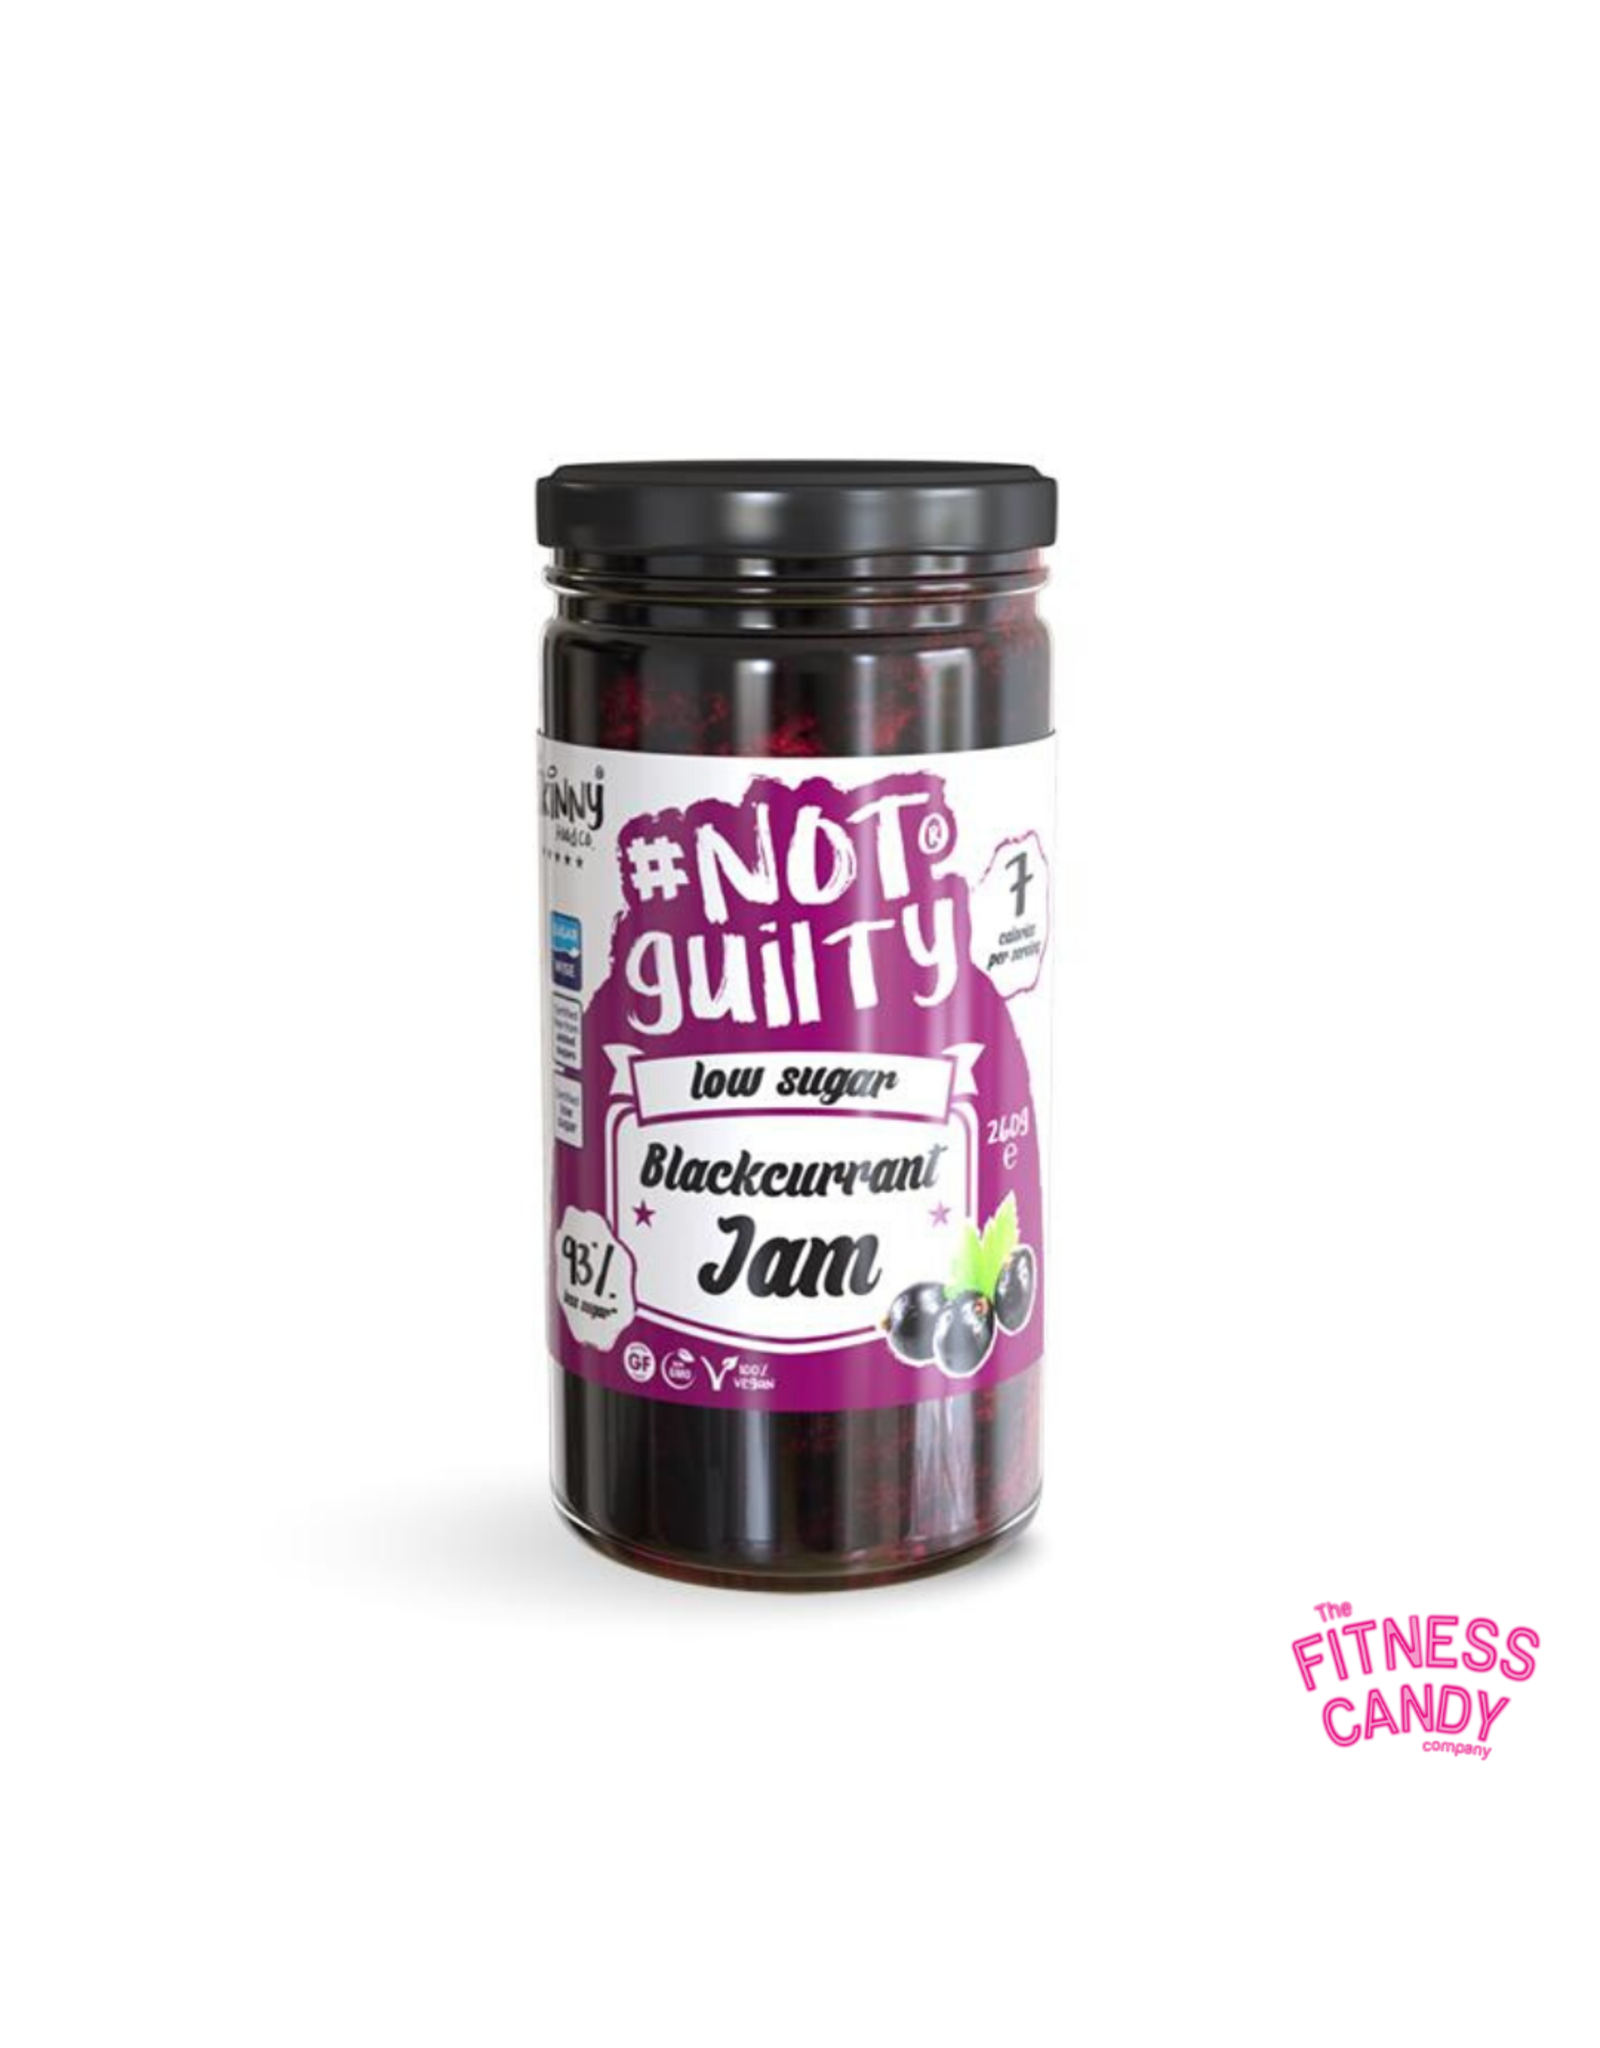 THE SKINNY FOOD CO #NOTGUILTY Blackcurrant Jam